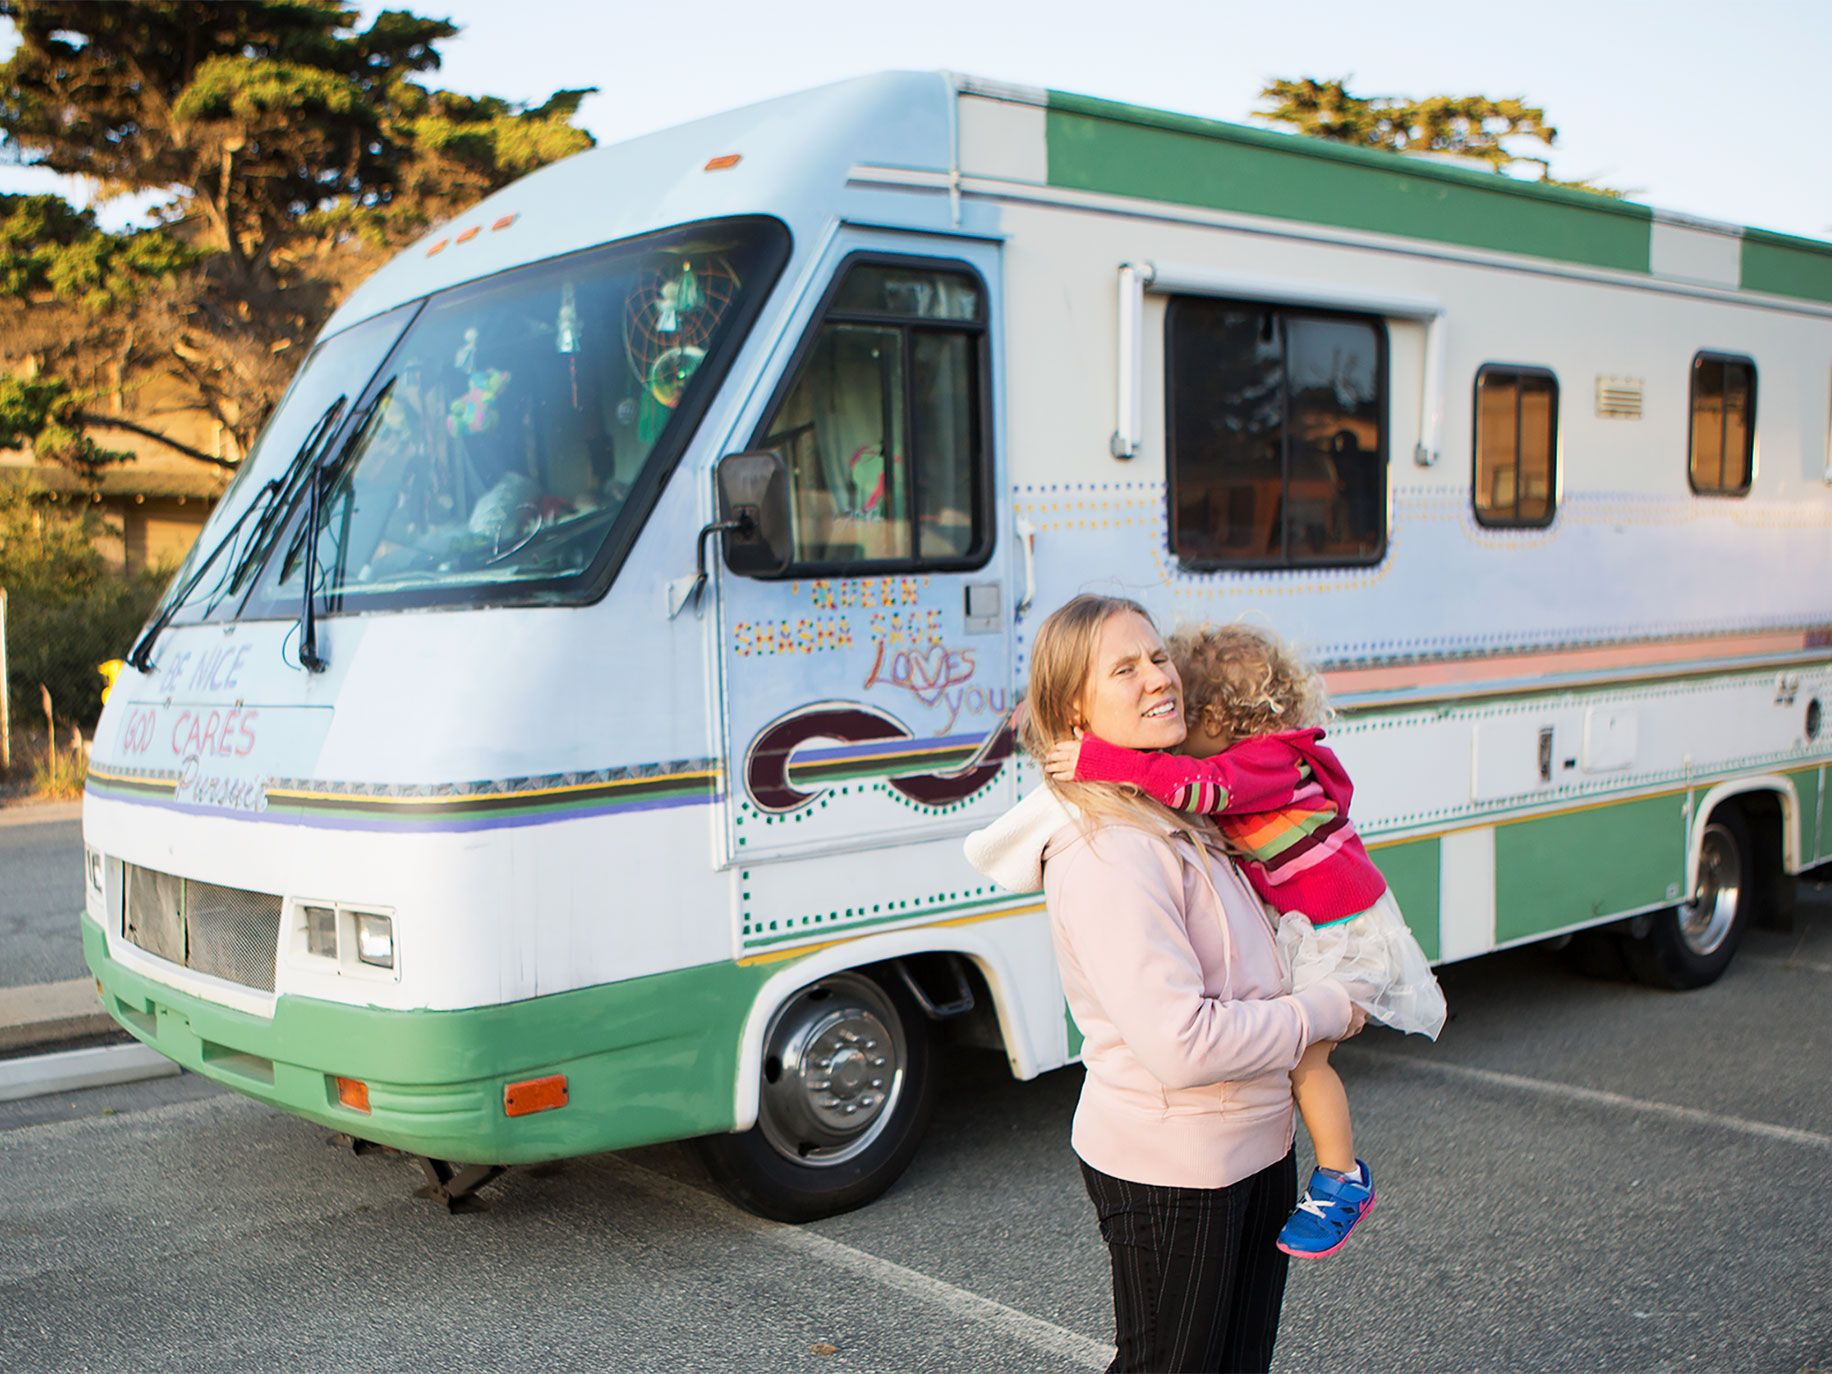 One Starfish founder Tia Fechter and her daughter on a visit to the organization's safe-parking site in Marina, California.